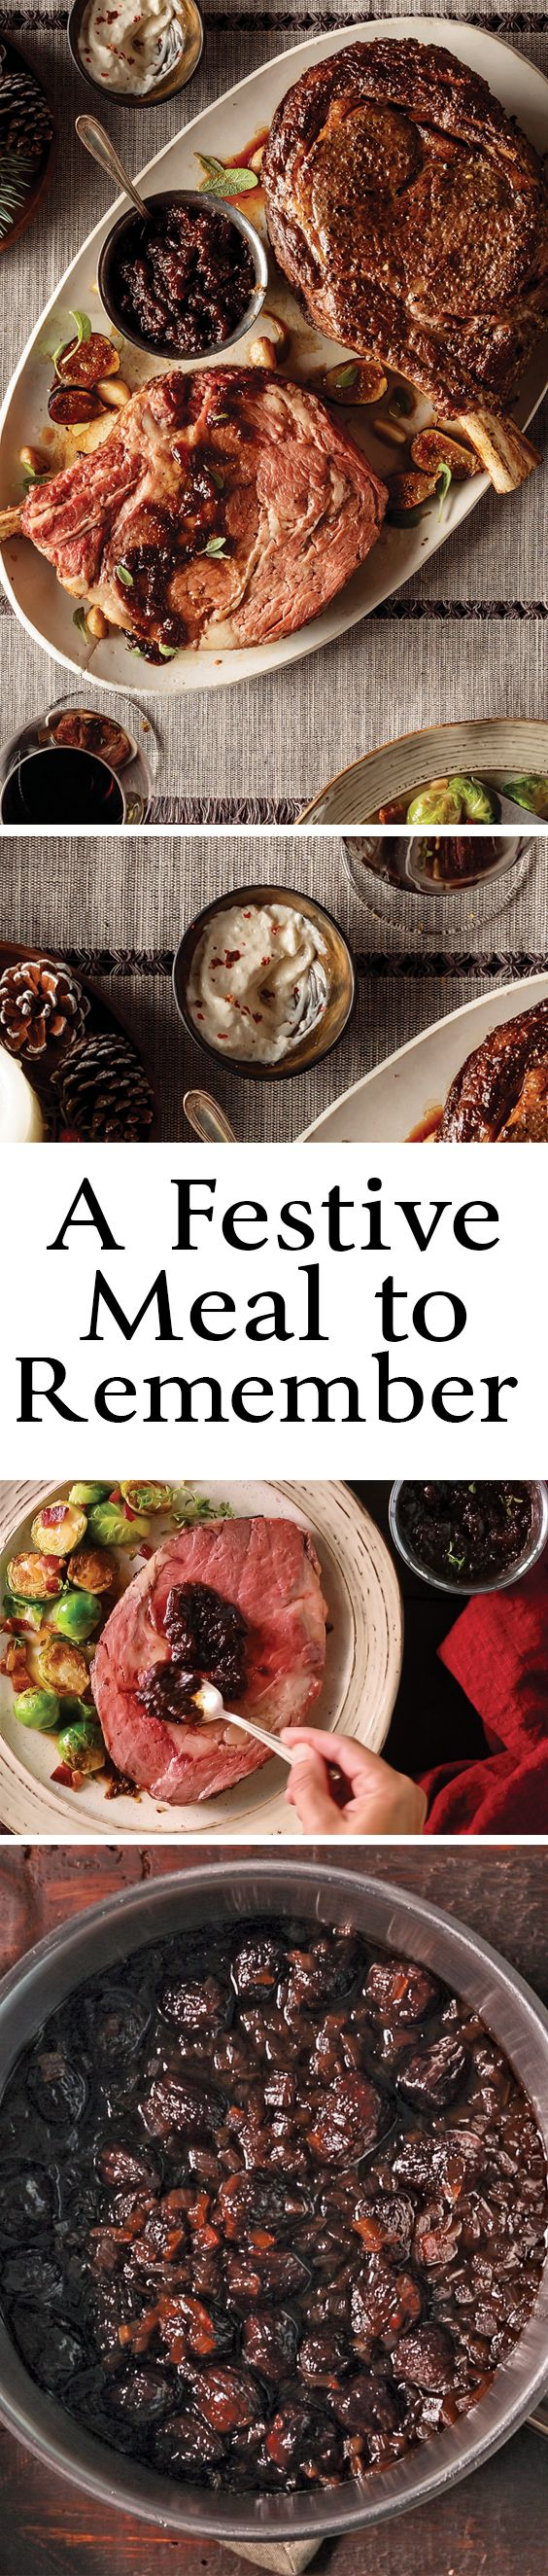 recipes for  Reverse-Seared Prime Rib Roast,  Reverse-Seared Chateaubriand,  Horseradish Cream and  Figgie Onion Jam